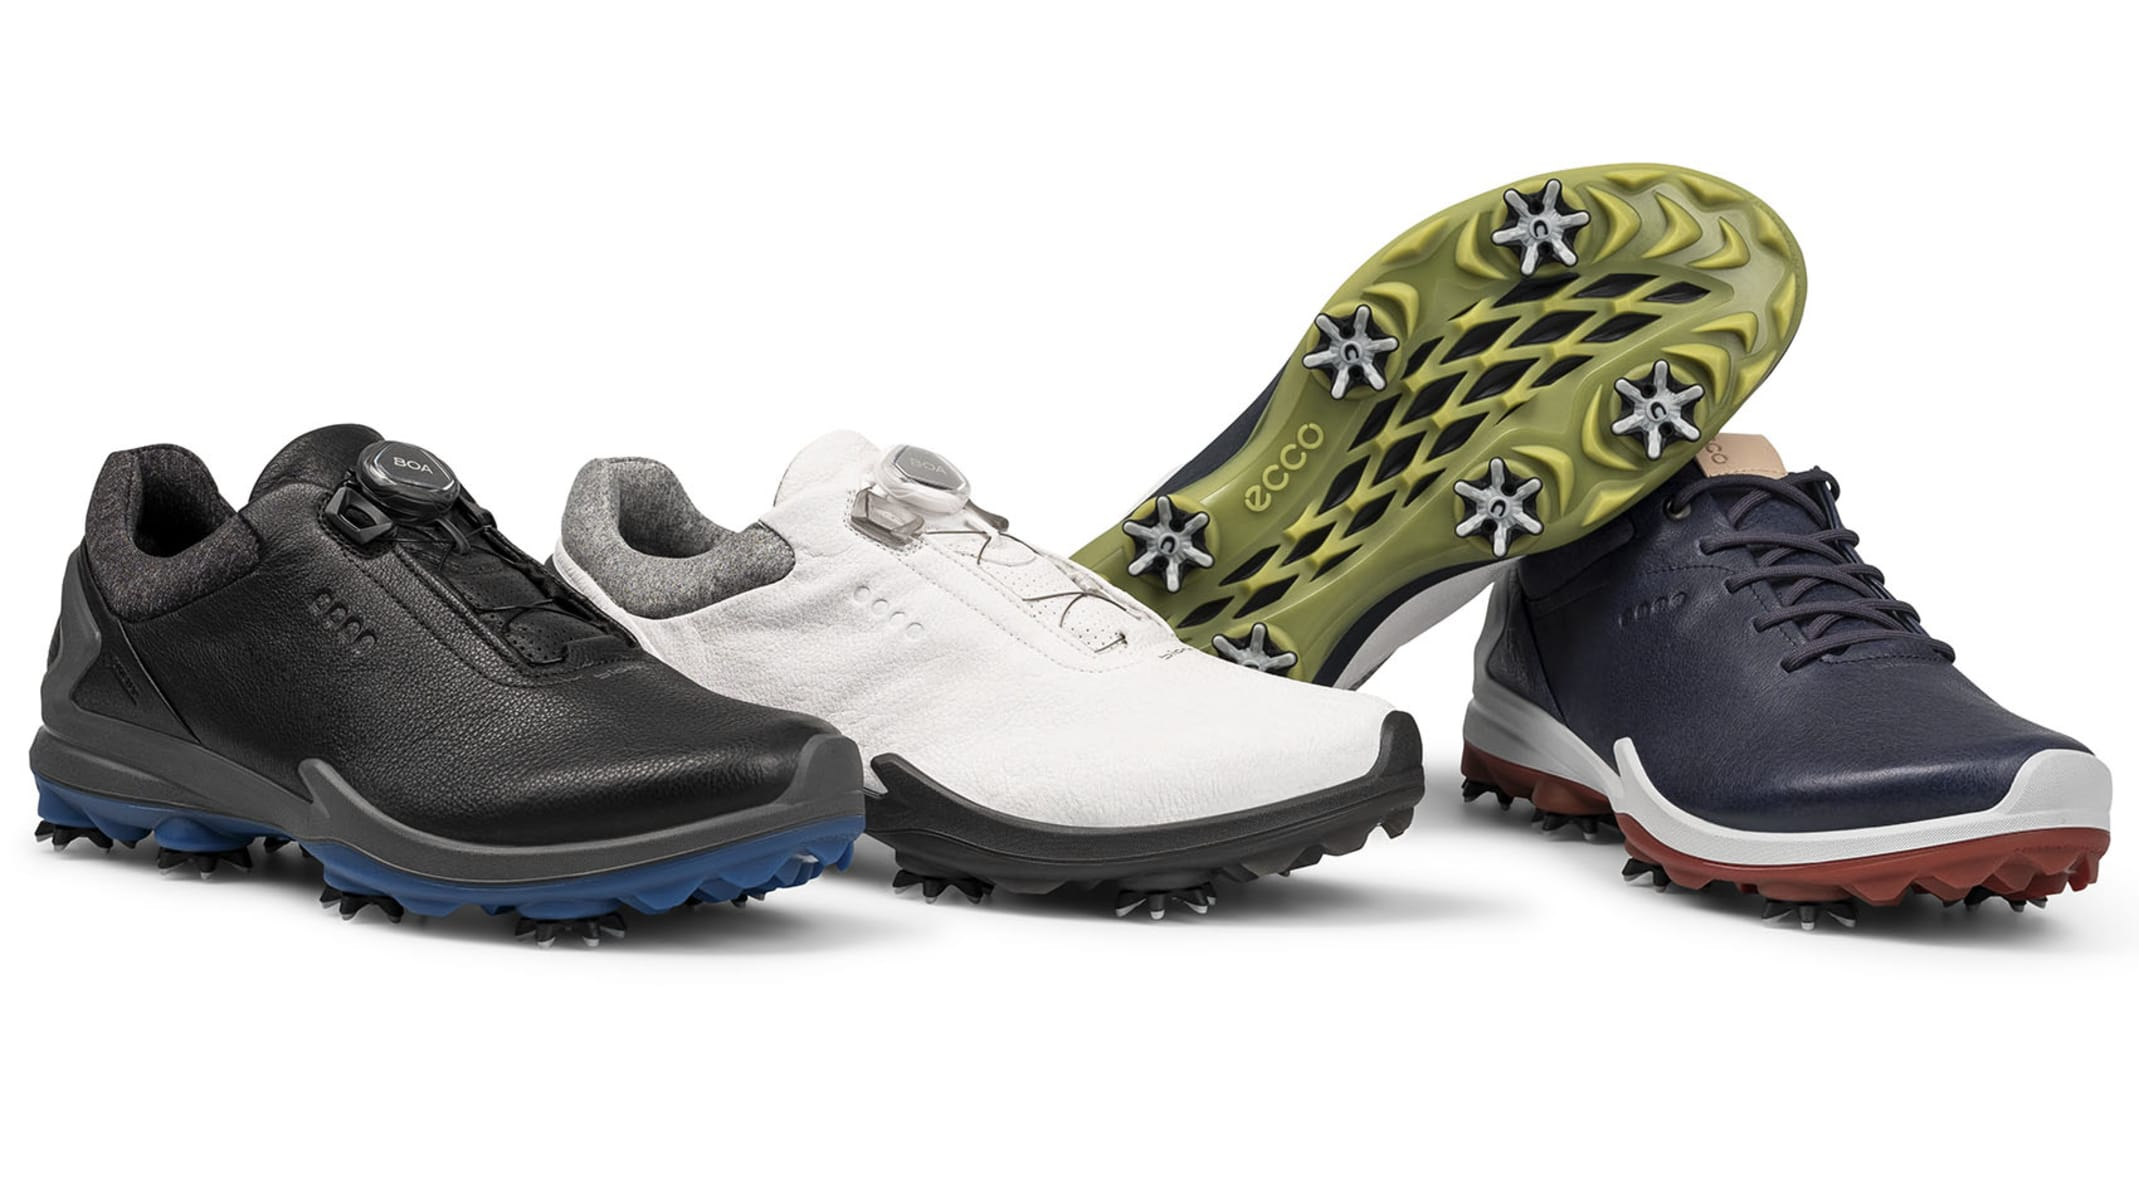 415fc997d1cc0 ECCO's new BIOM G3 shoes are available in four colorways with either  traditional laces or the